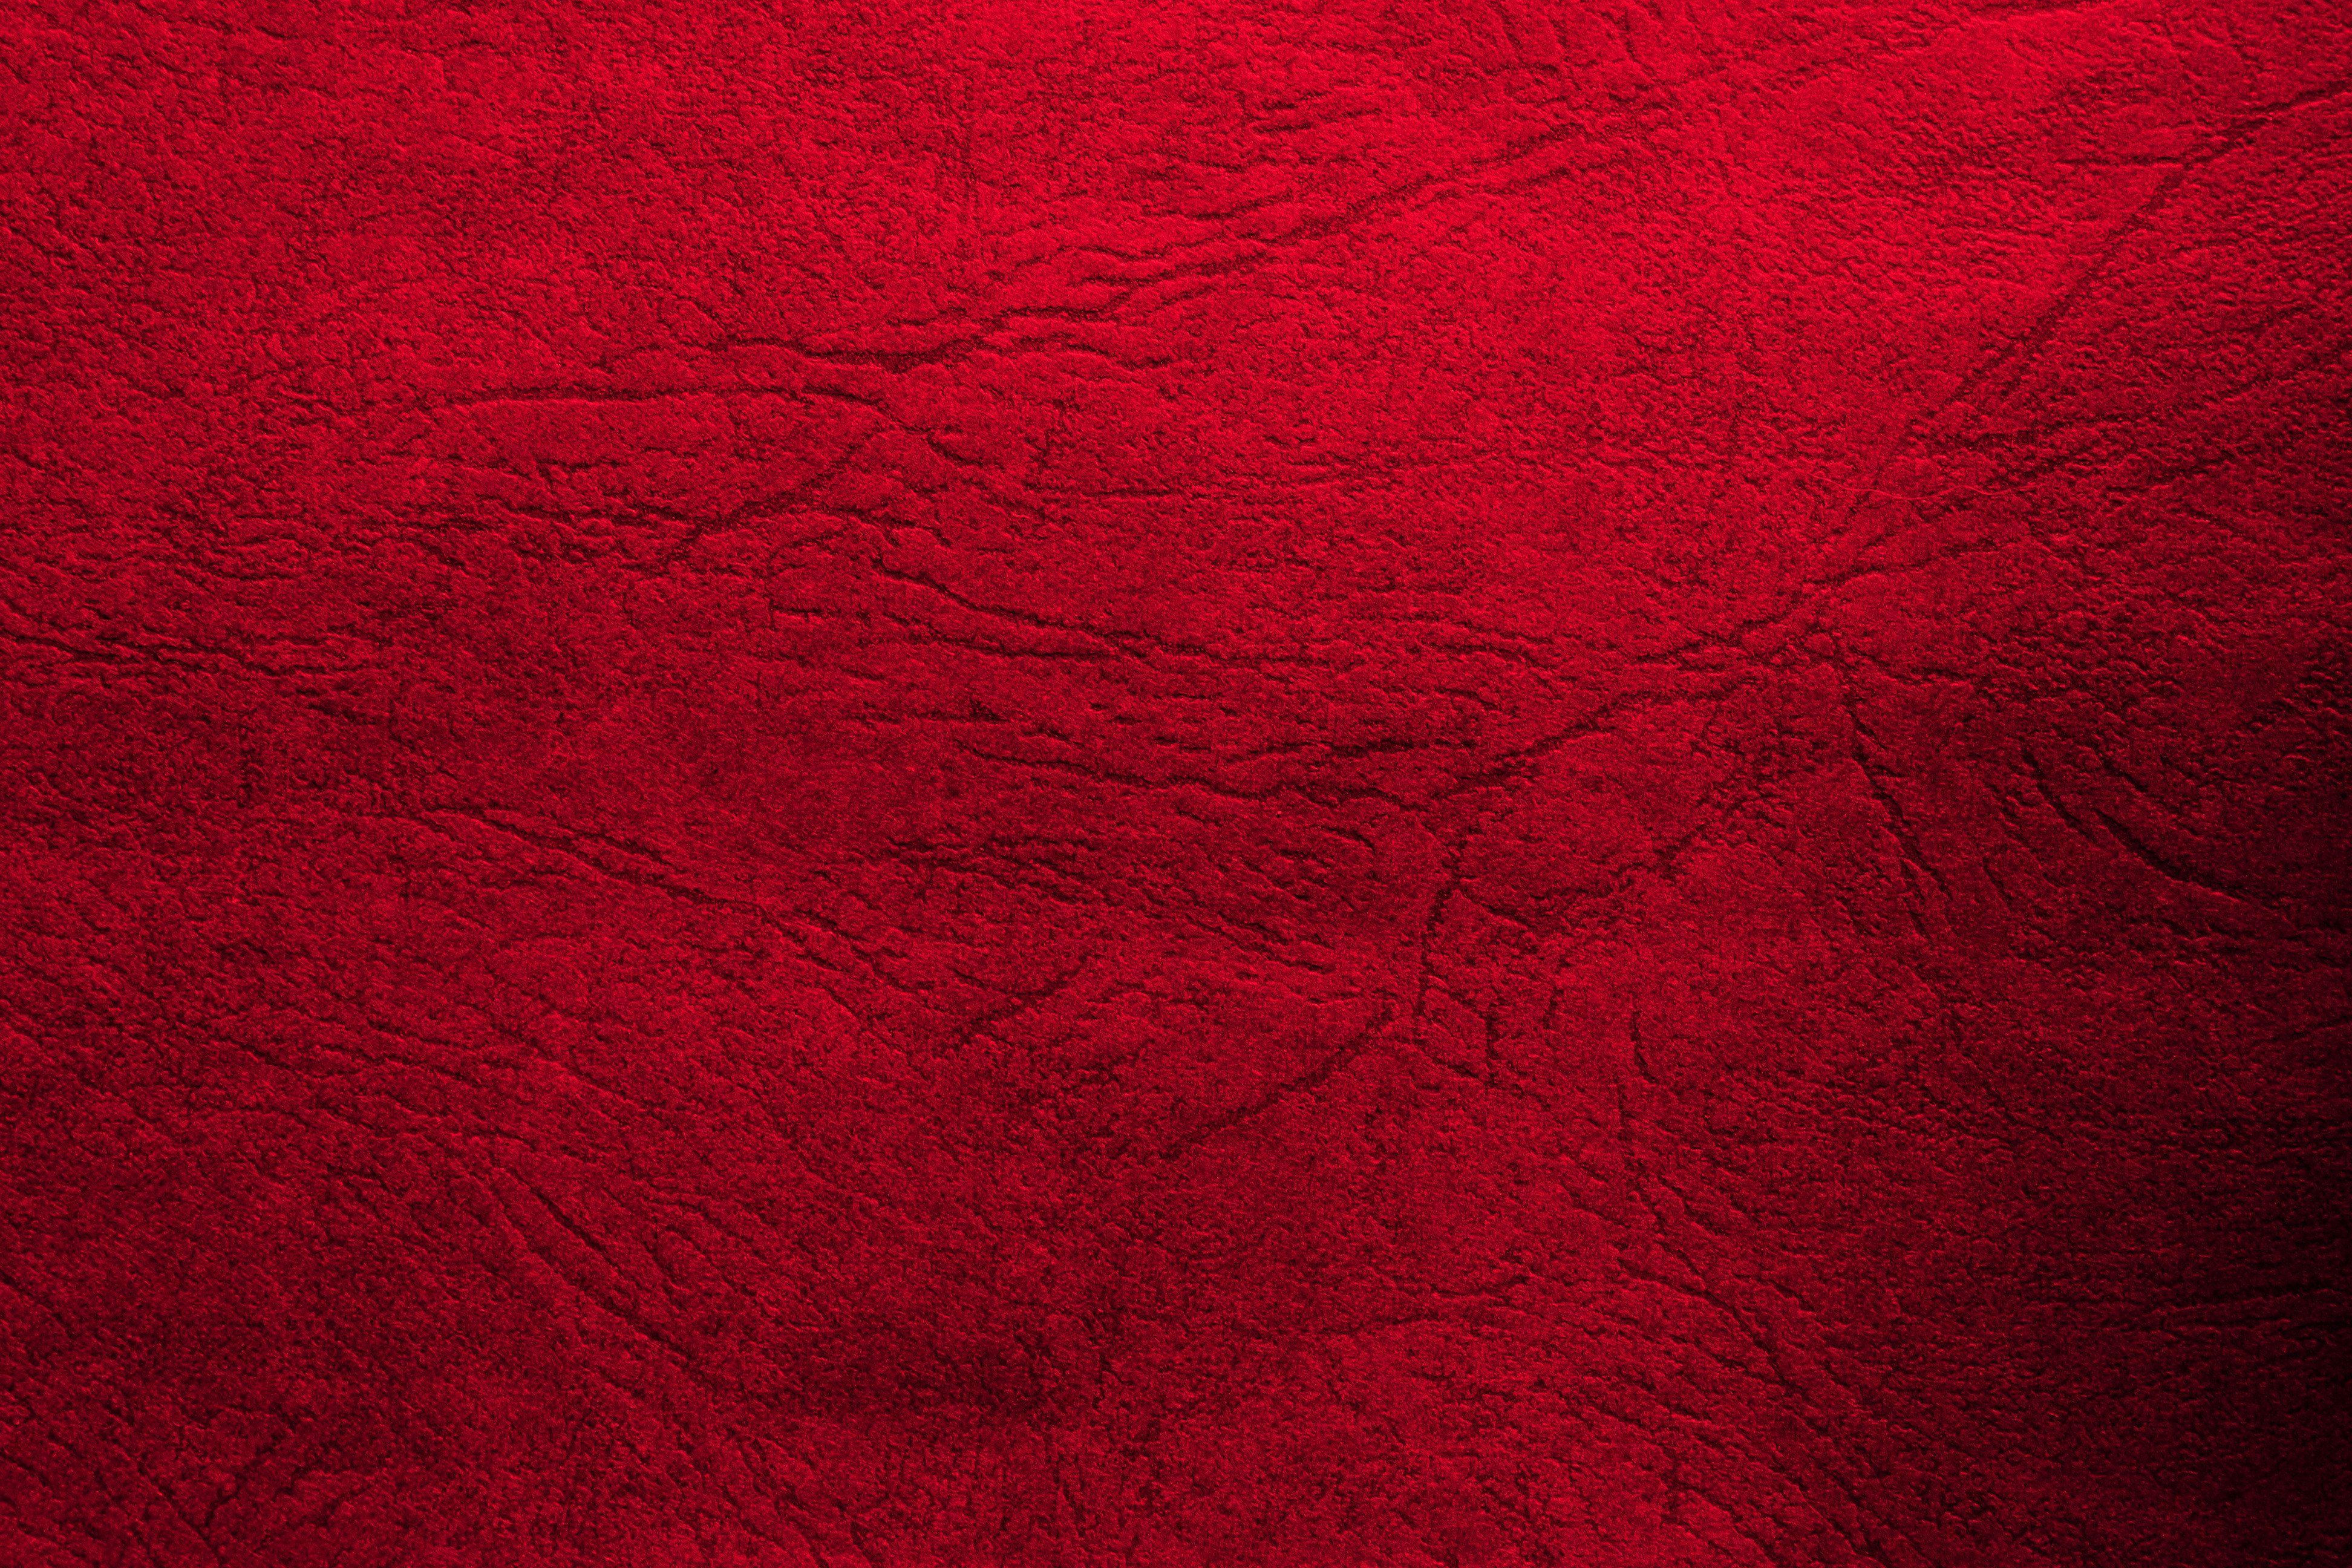 Red Leather Texture Feel It Textures amp Patterns